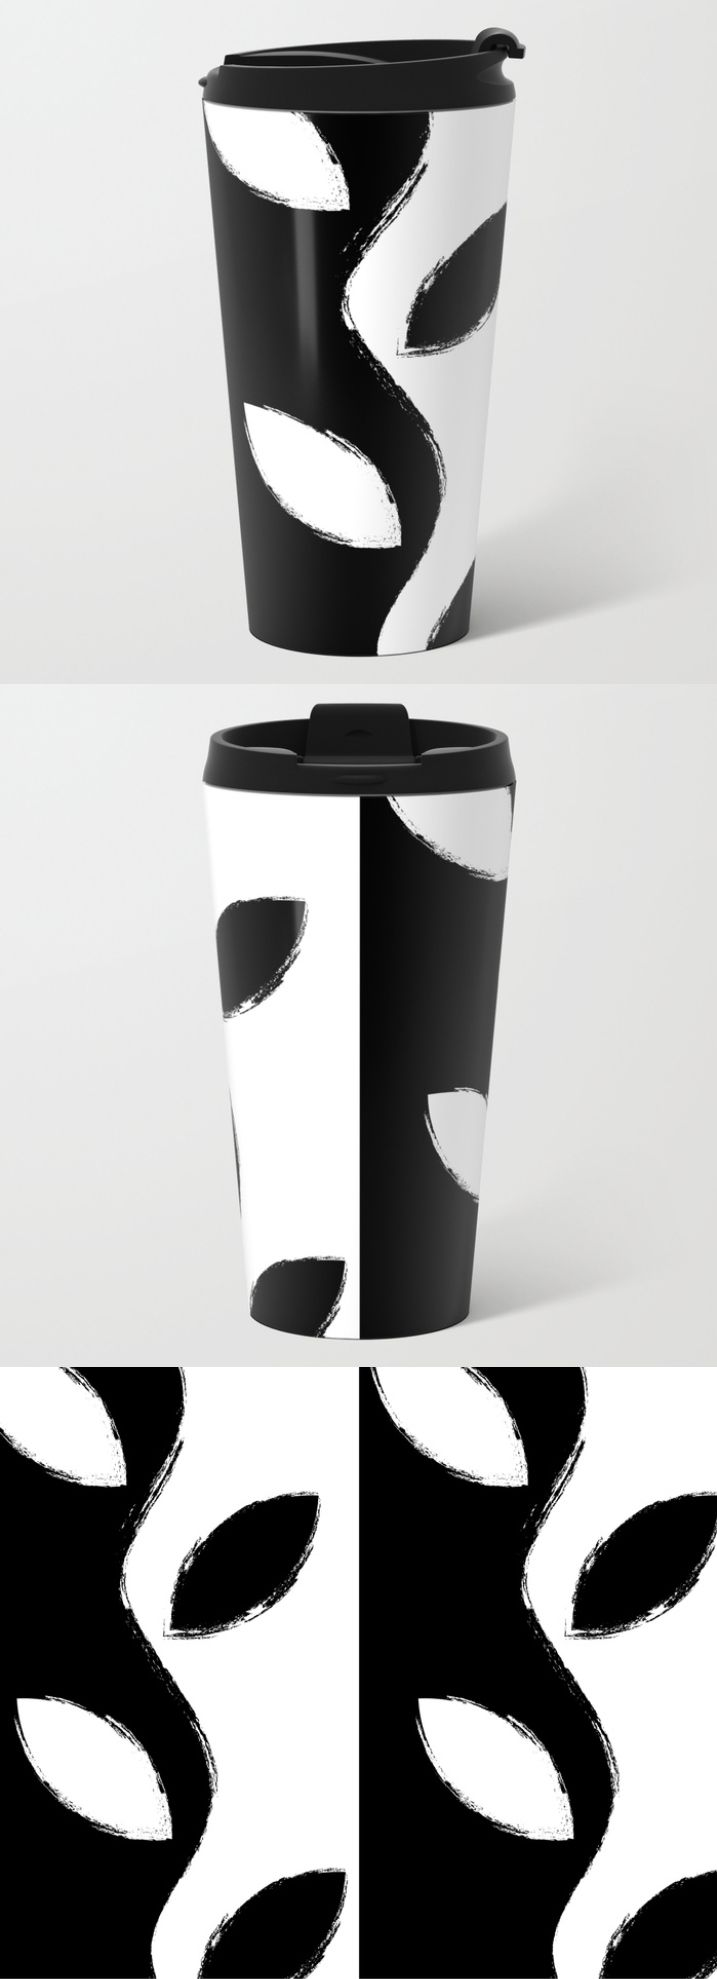 $24.99 In addition to a 360-degree wraparound design, our metal travel mugs are crafted with lightweight stainless steel, double-walled to keep drinks hot (or cold). #mug #travel #coffee #tea #home #decor #floral #paint #brush #strokes #pattern #elegant #creative #modern #black #white #leaves #flower #abstract #nature #buyart #society6 #gift